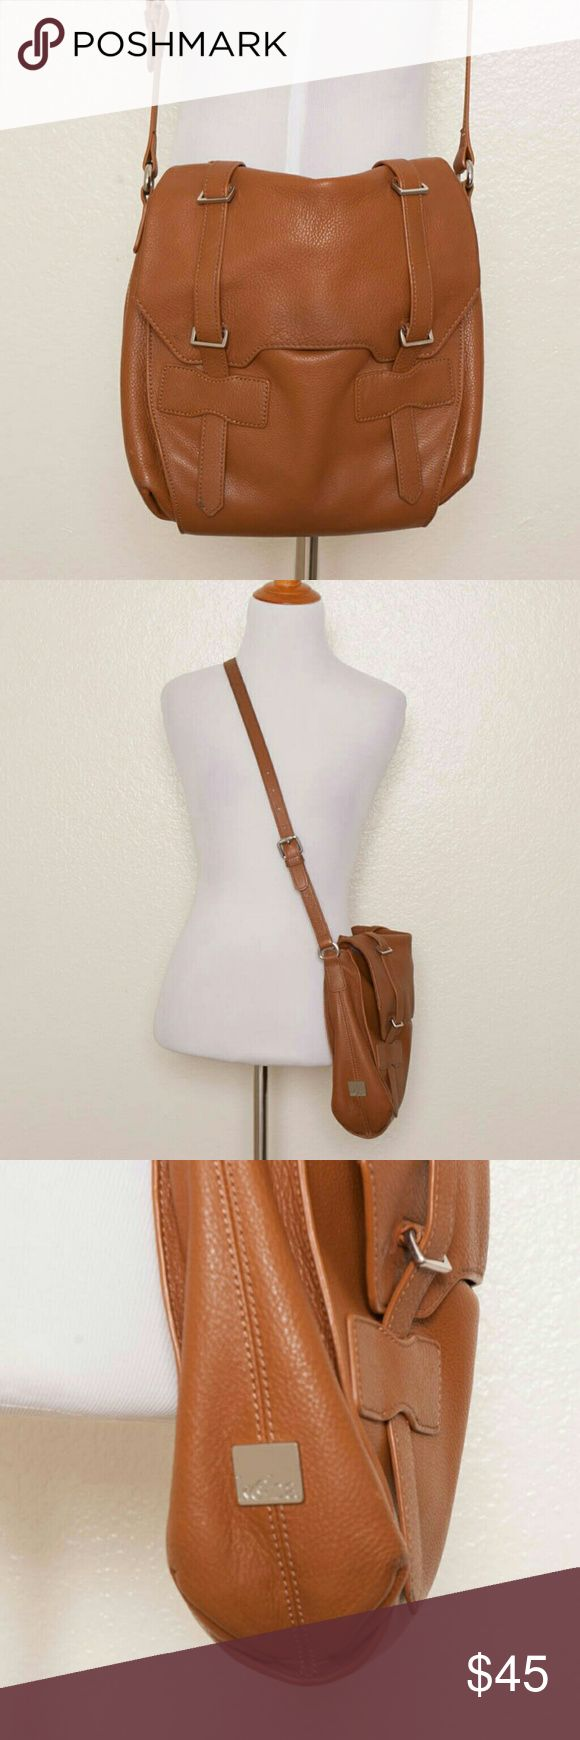 Kooba Jane Leather Crossbody ?Jane? Crossbody in ?Luggage? brown colorway Leather With Polished Silvertone Hardware Side Logo Plate 42'' Crossbody Strap With 18'' Drop; 8'' Top Handle With 3'' Drop Measures Approximately 10'' At Widest X 9?'' Tall At Center X 5'' Deep; Weighs 2 Lbs  Condition: Bag is clean and shows moderate wear. Some light scratches on the silvertone hardware; light wear at two of the bottom corners; darkened area on the back; heavy wear on the strap with some fraying and…